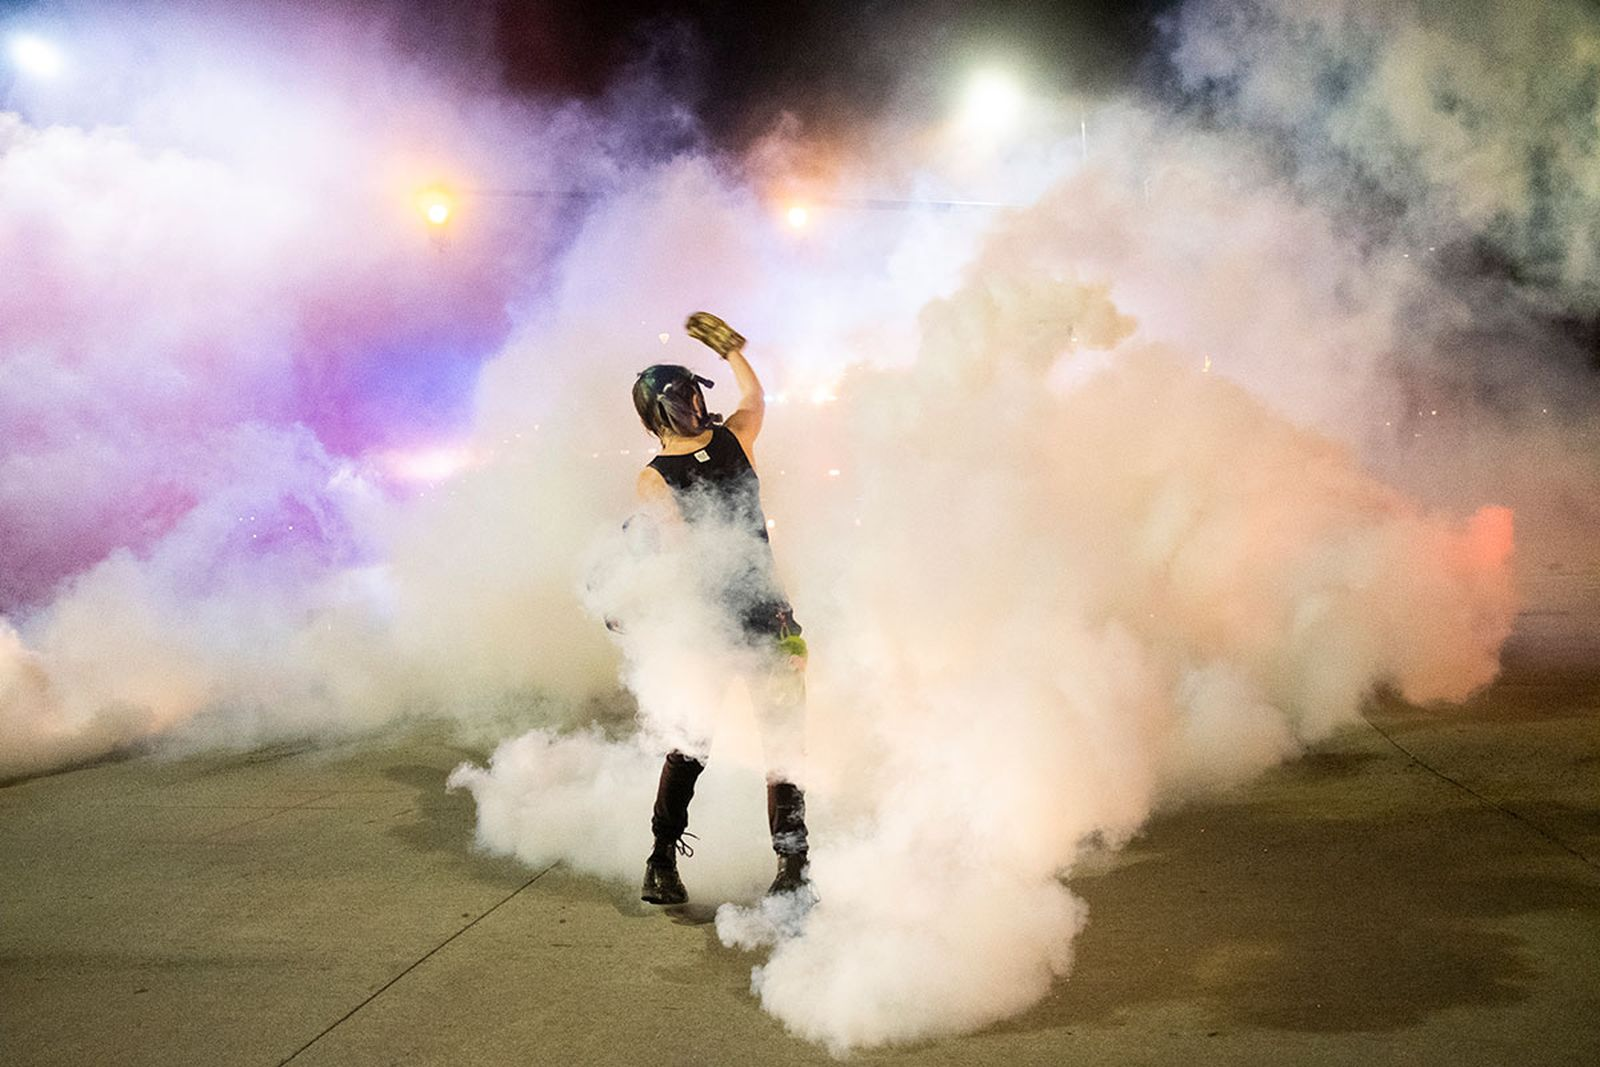 Protestor With Gas Cannister